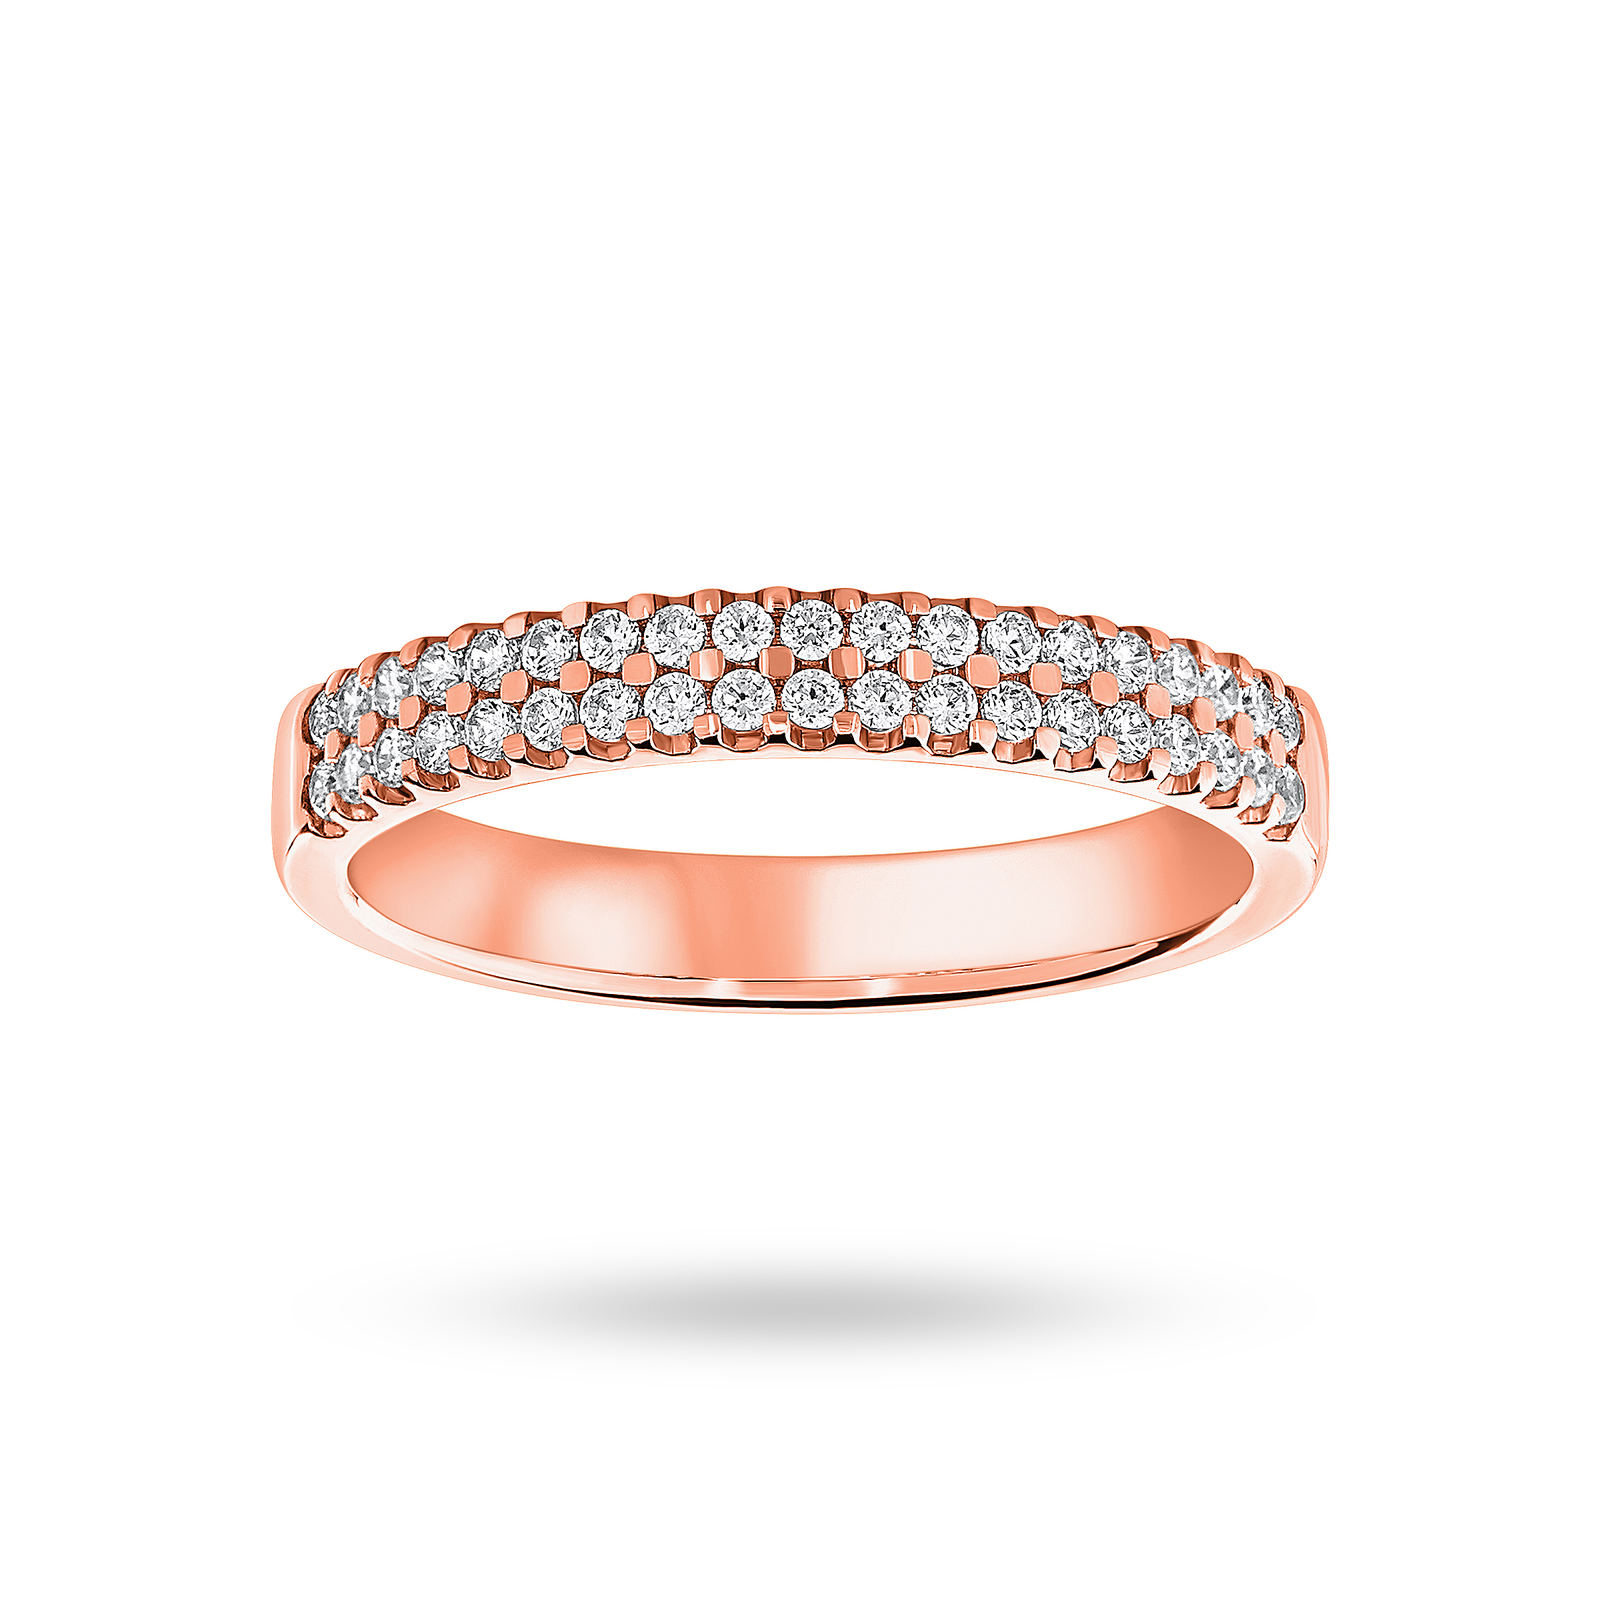 18 Carat Rose Gold 0.25 Carat Brilliant Cut 2 Row Claw Set Half Eternity Ring